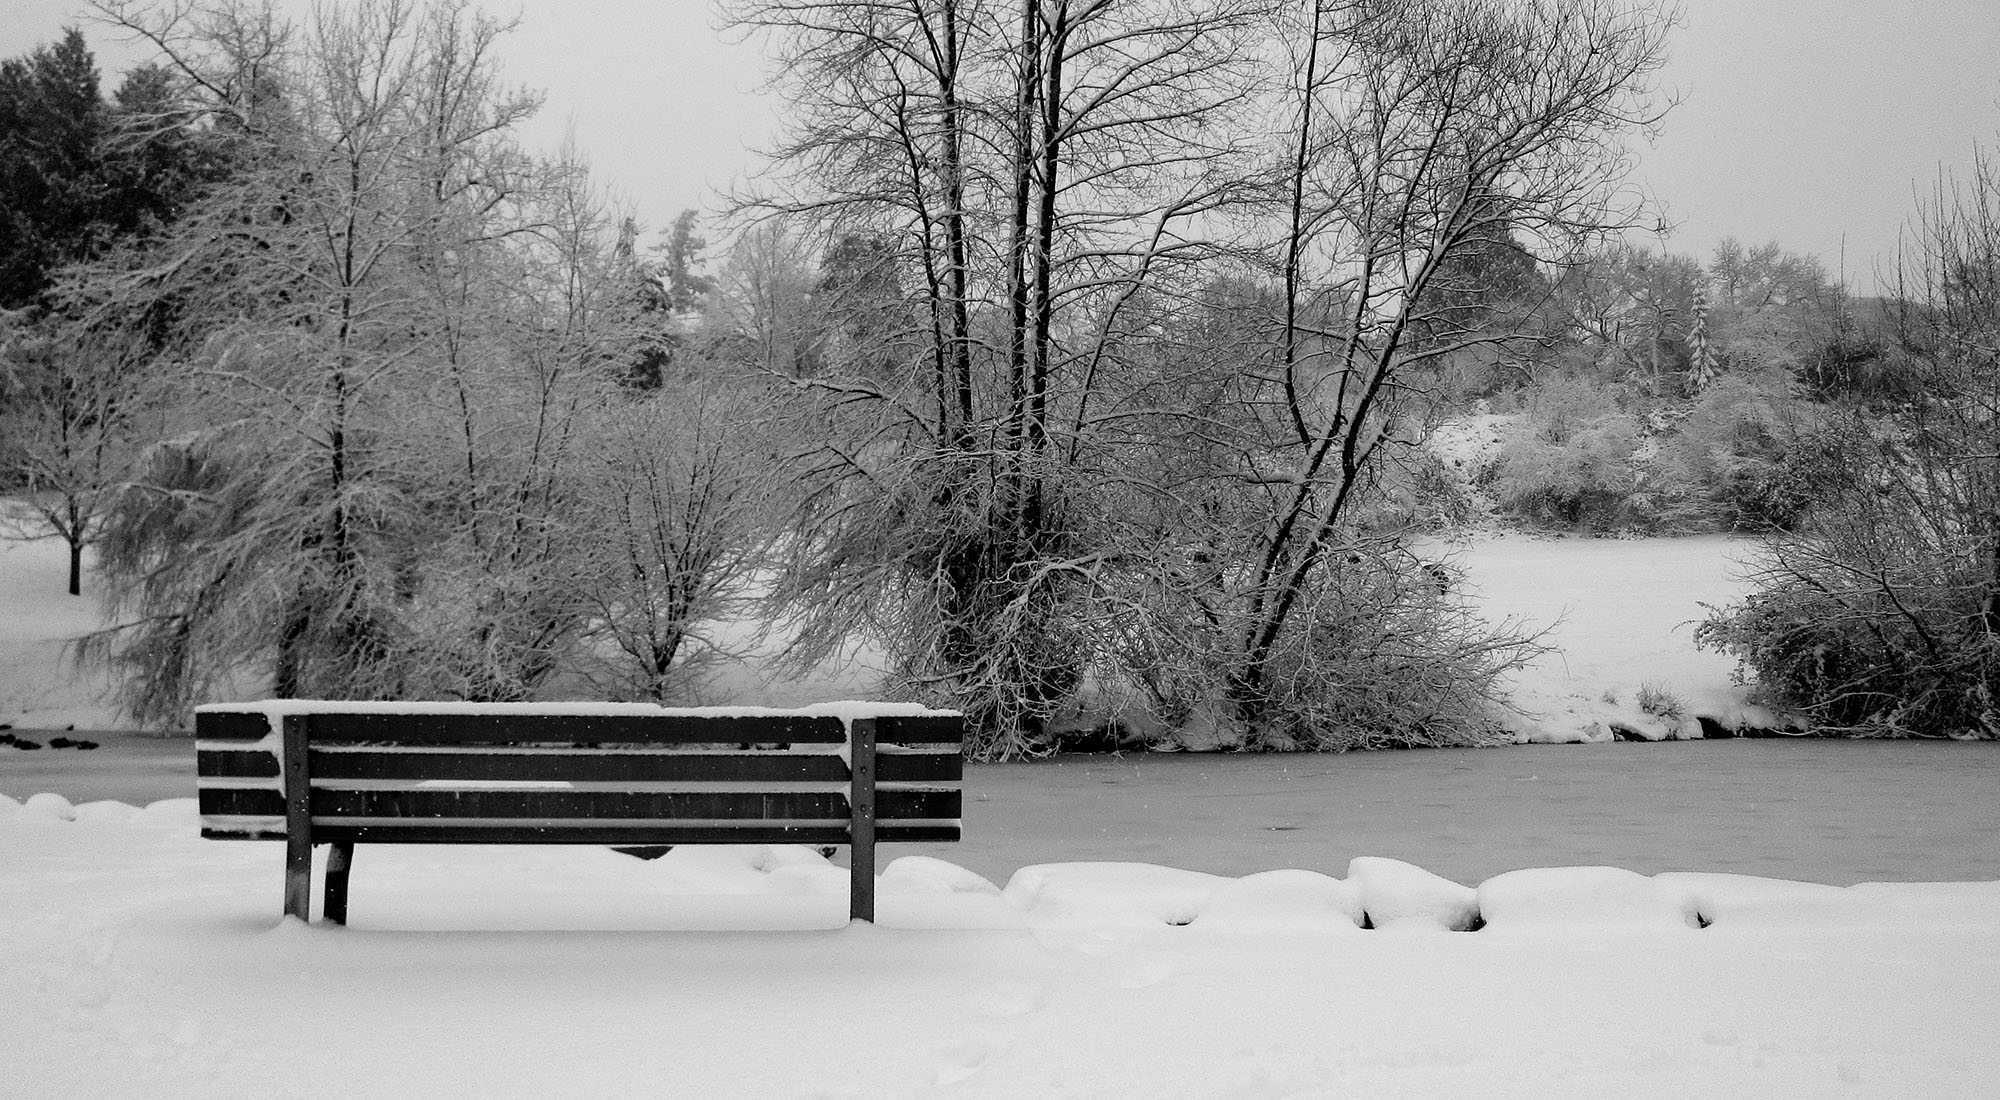 Snow in Queen Elizabeth Park (Olga Zamudio/Flickr)